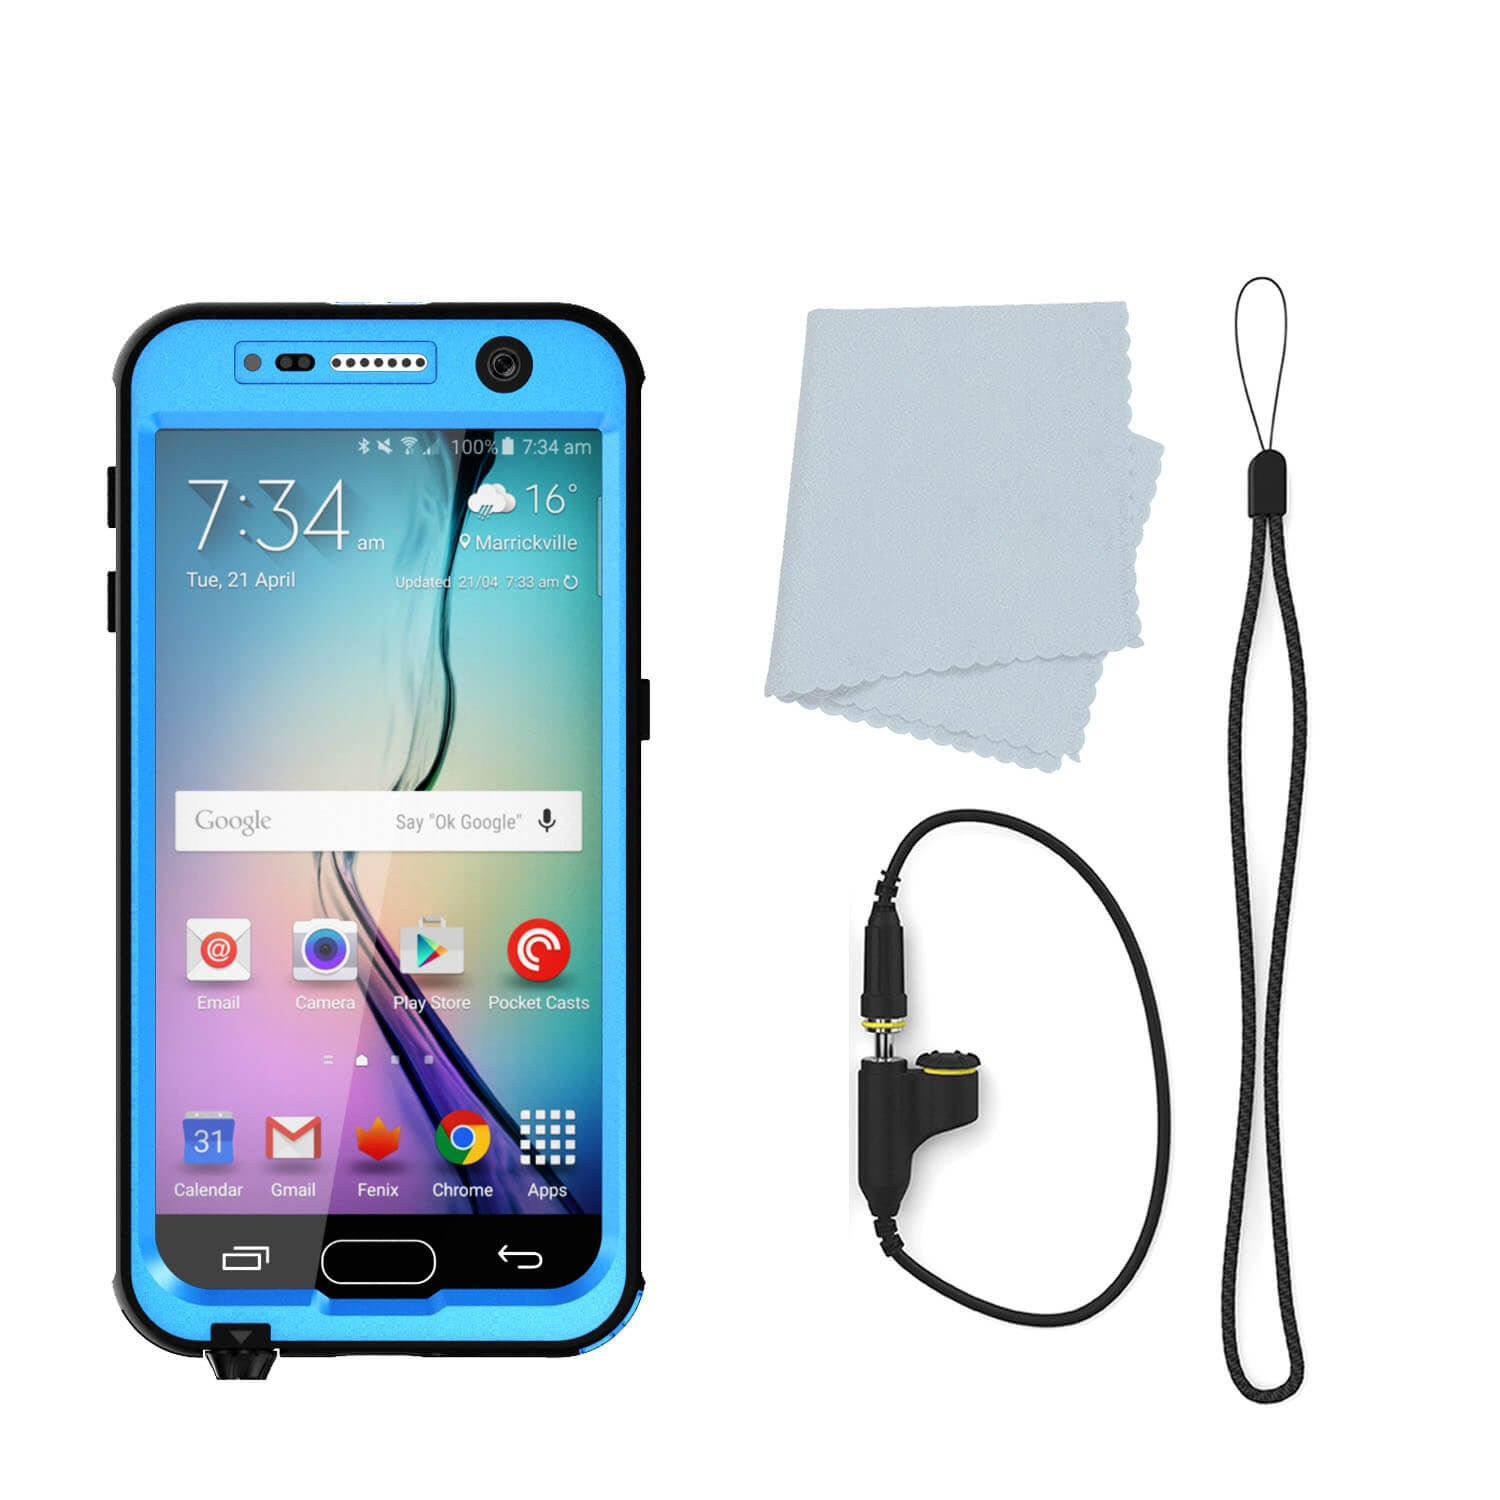 Galaxy S7 Waterproof Case PunkCase StudStar Light Blue Thin 6.6ft Underwater IP68 Shock/Dirt Proof